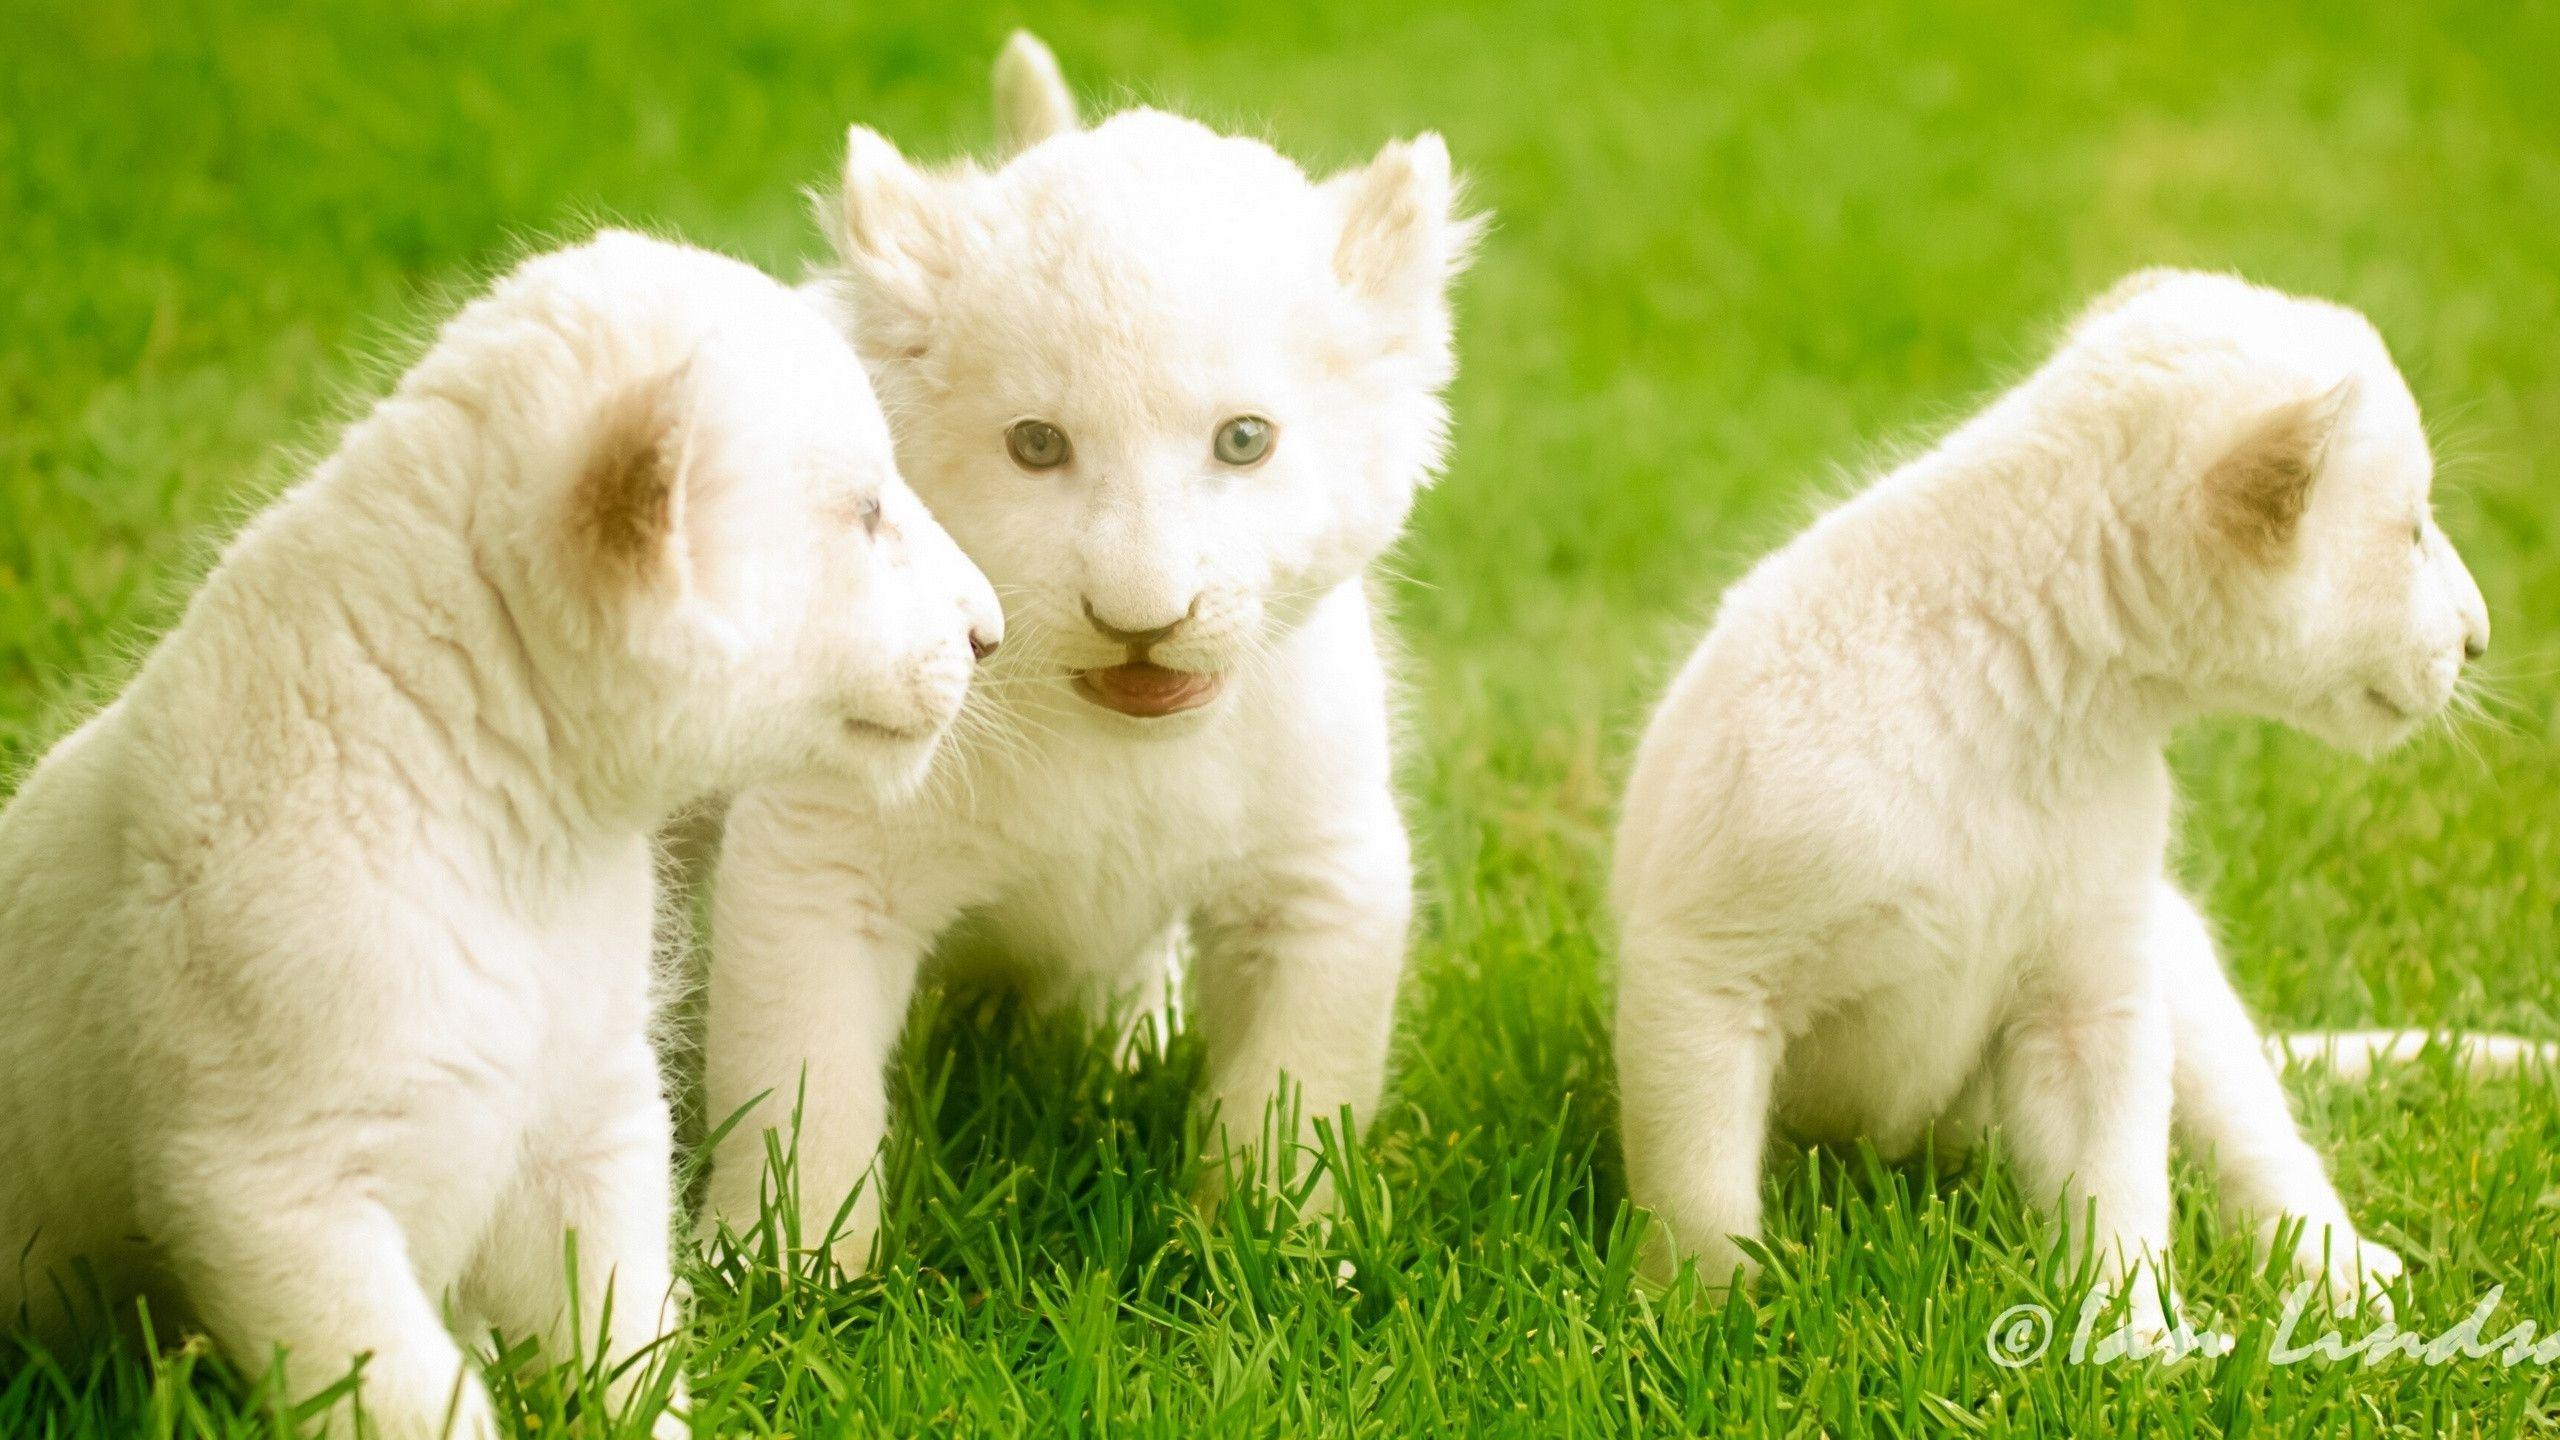 White Lion Wallpapers 2560x1440